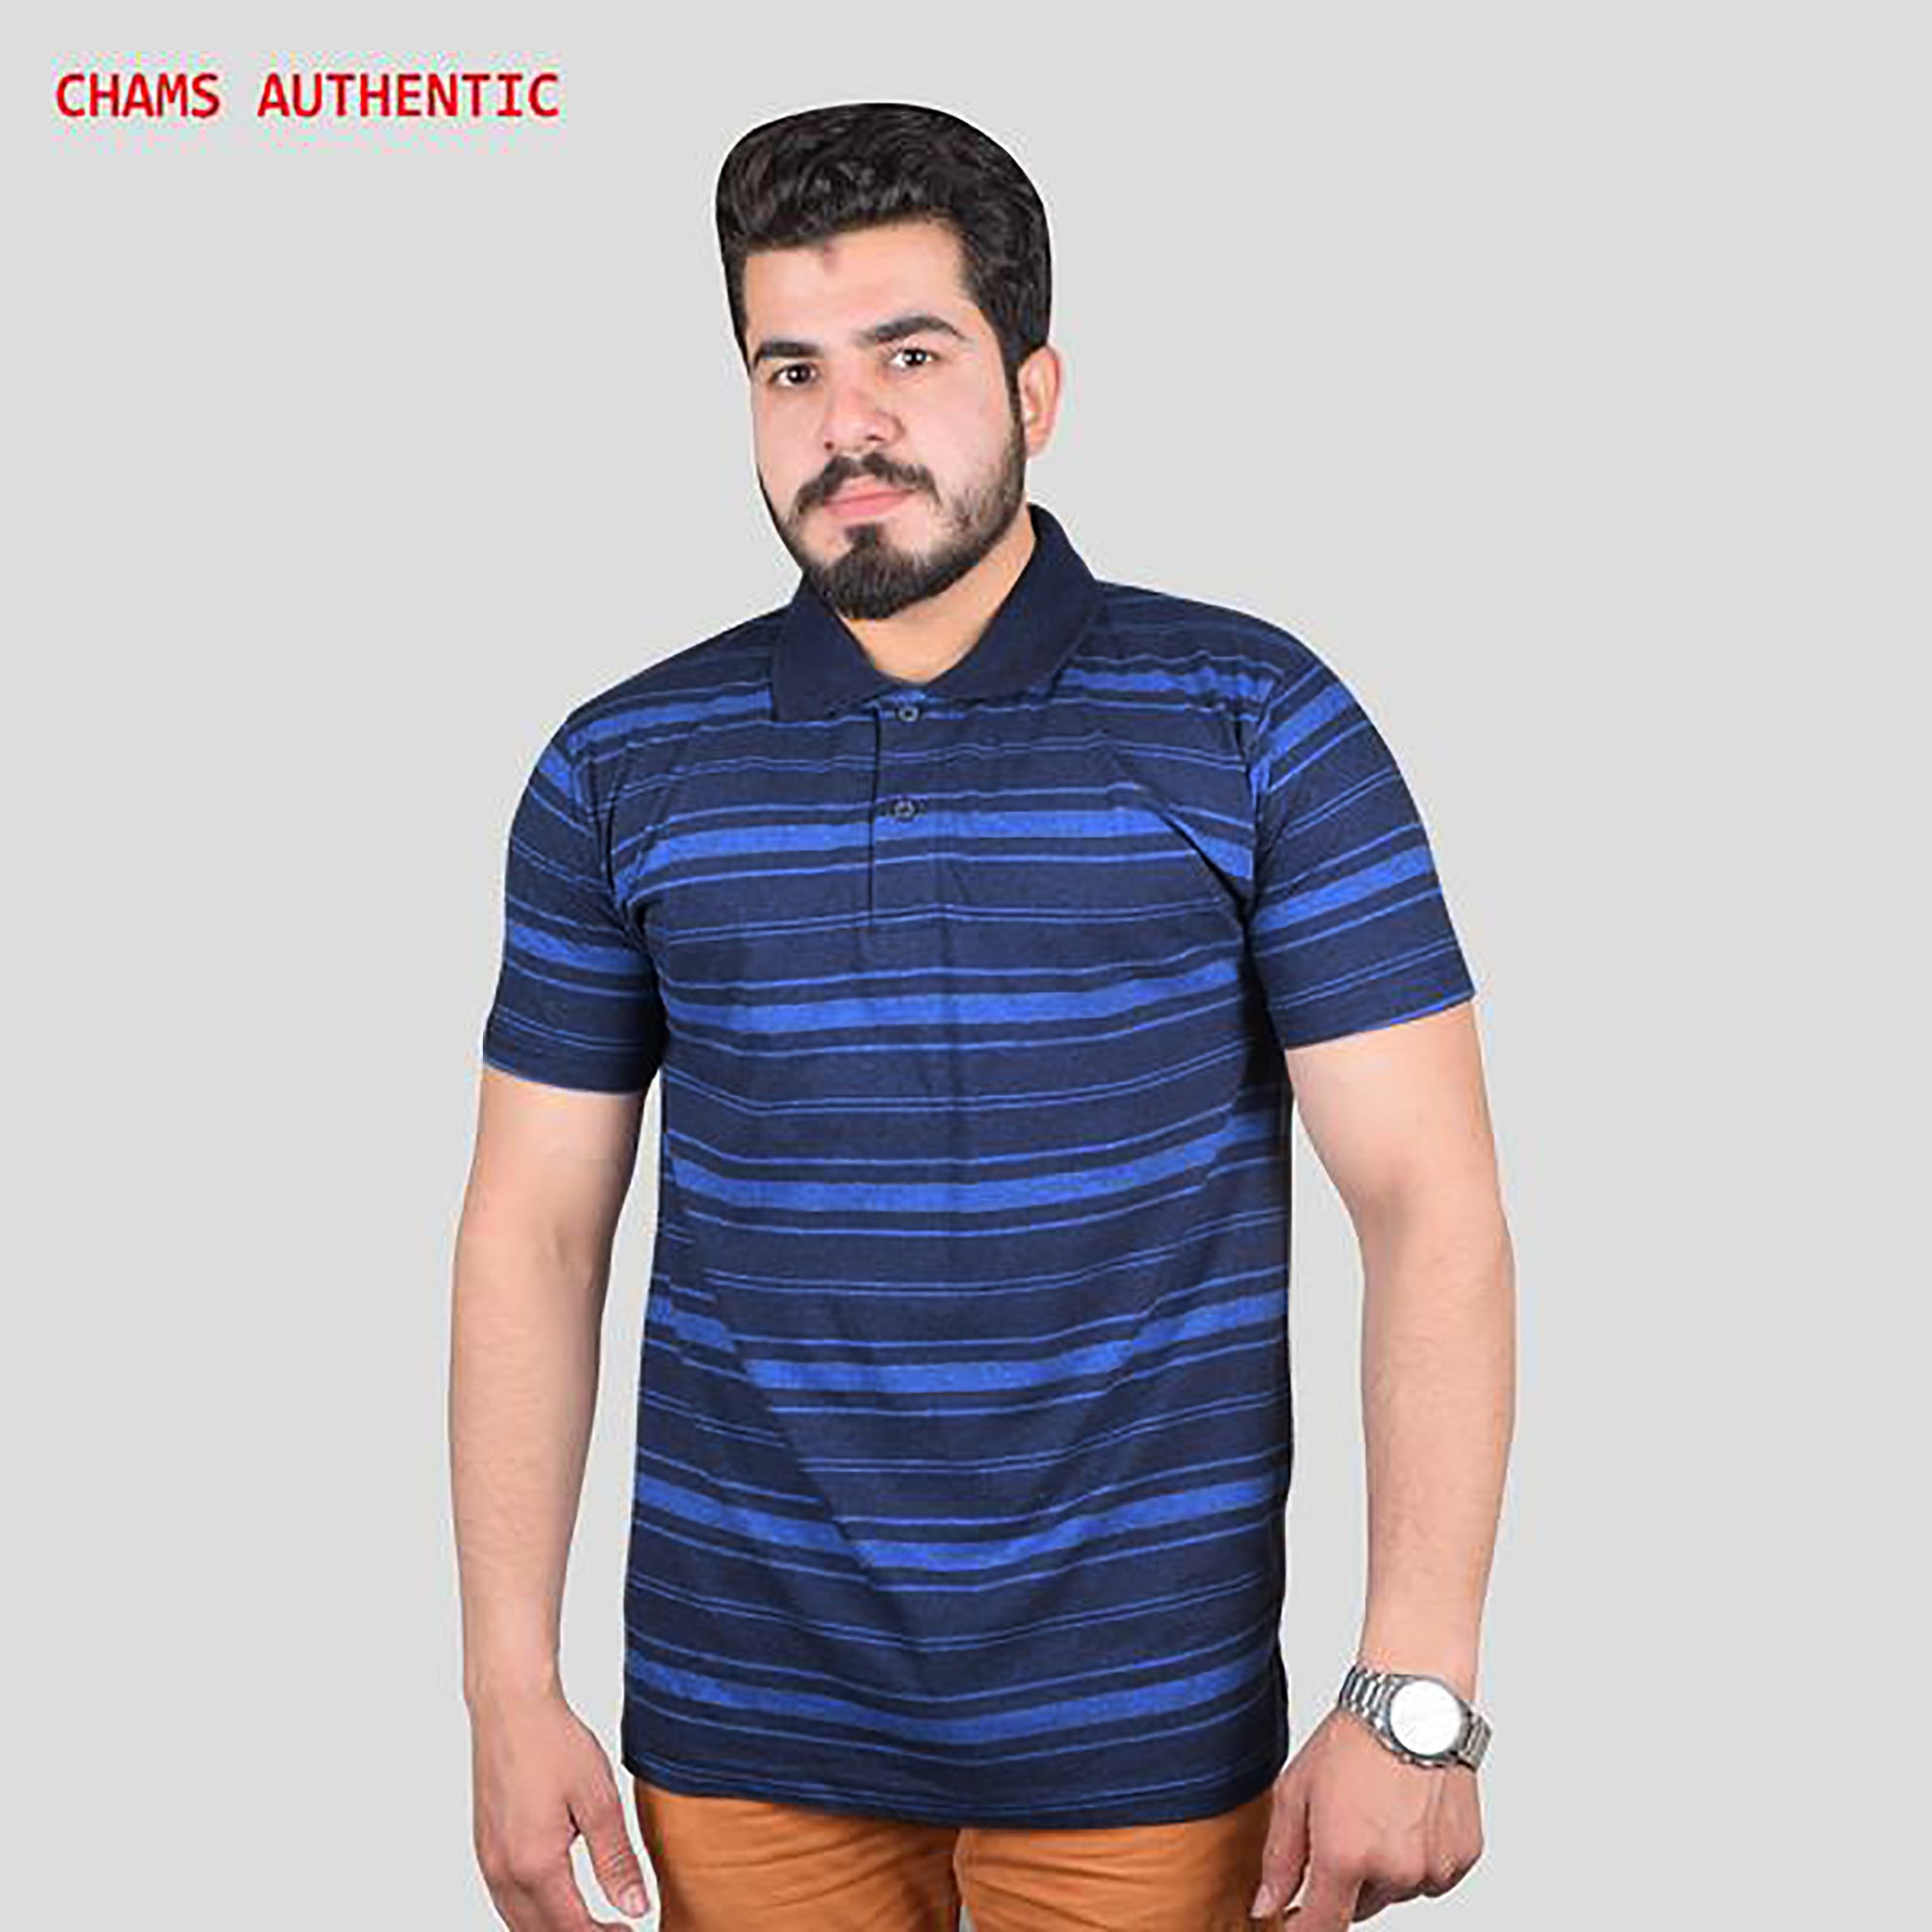 Chams Authentic Single Jersey Polo Shirt For Men-Navy & Blue Stripes-BE4460